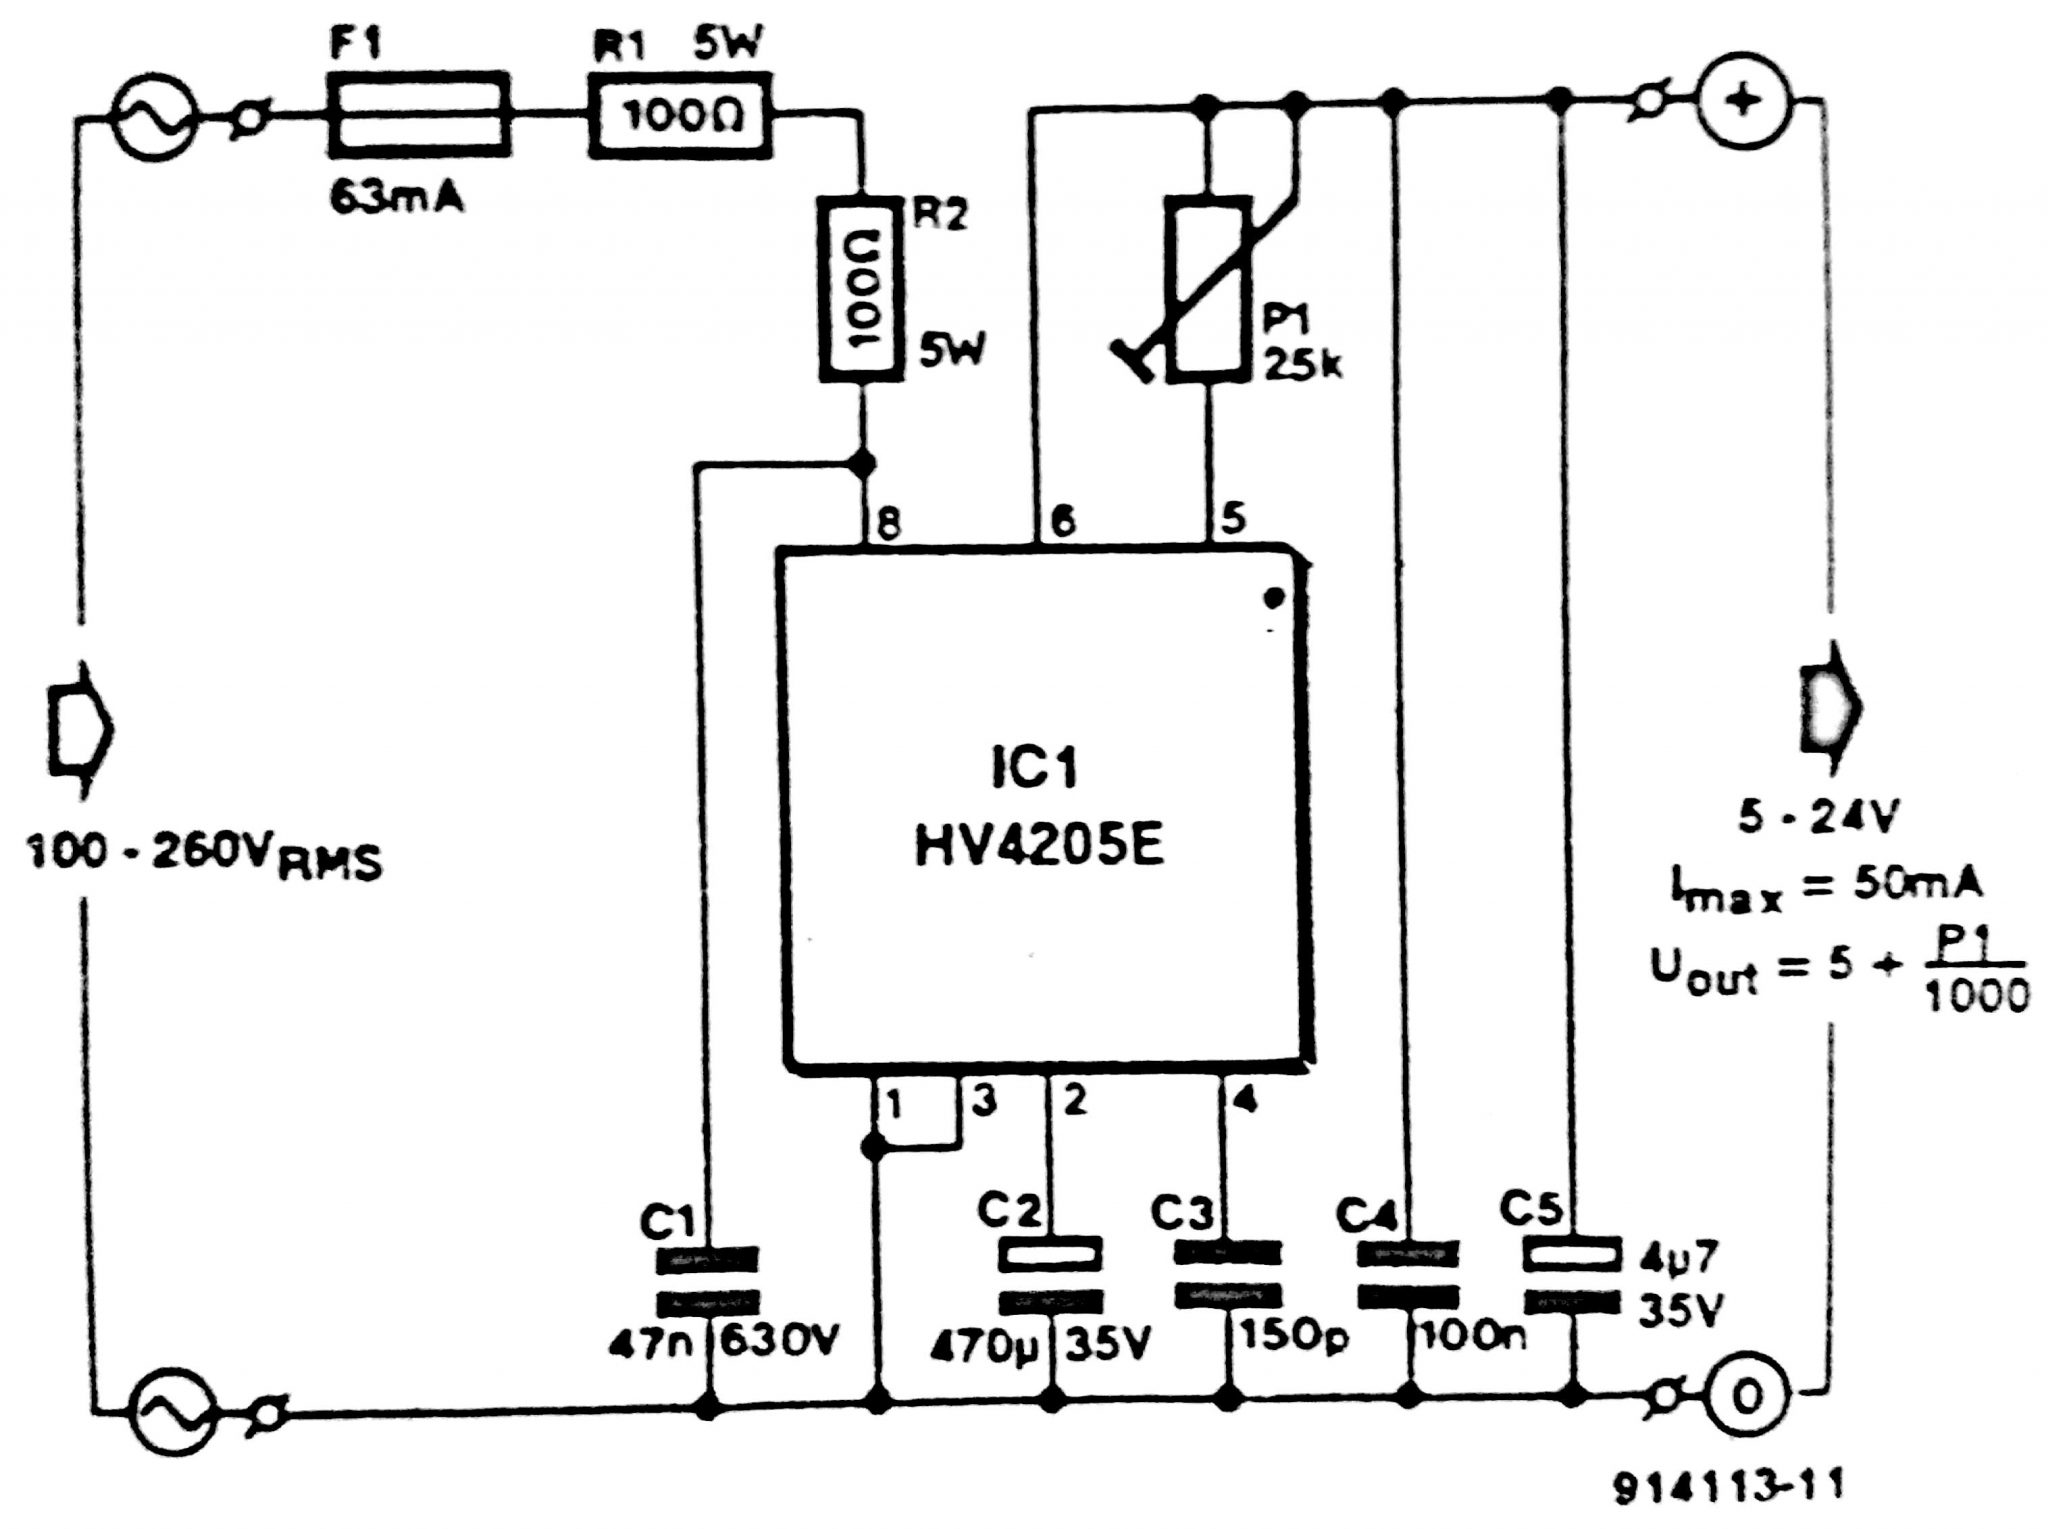 Circuit Diagram of Low-Voltage Power Inverter AC-DC